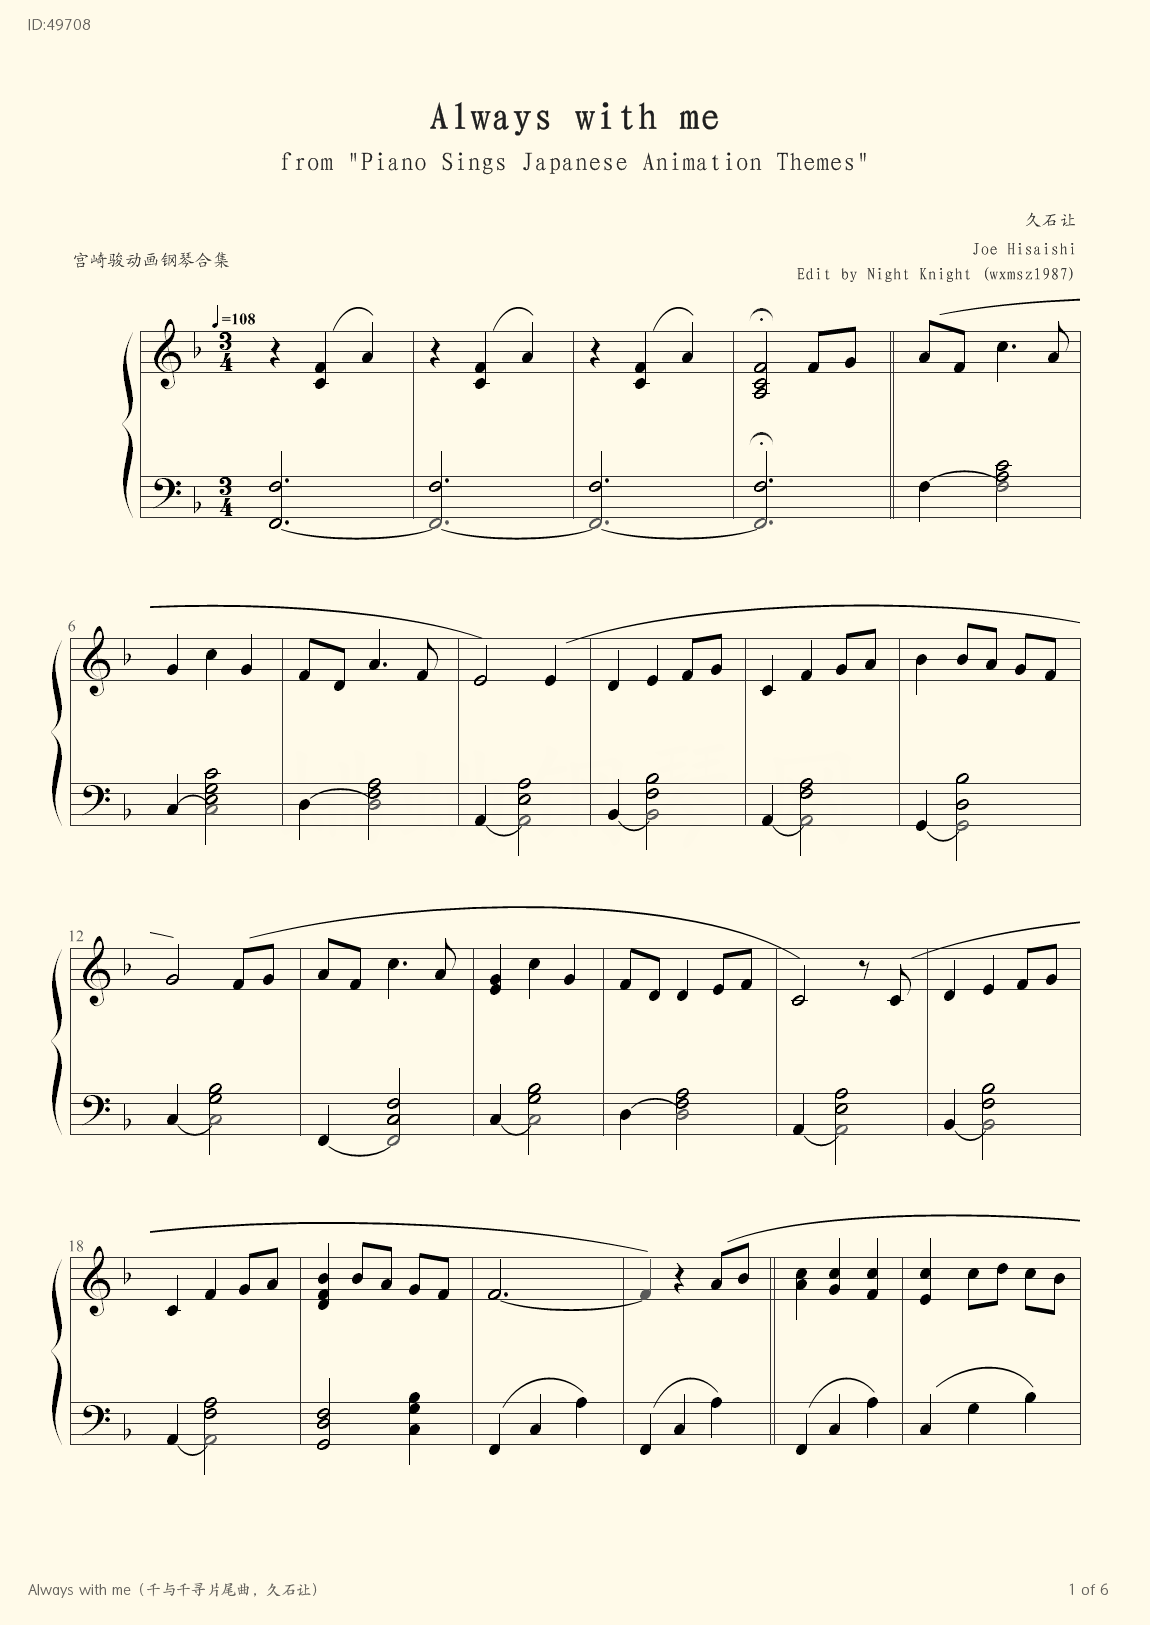 Always with me  - Joe Hisaishi - first page